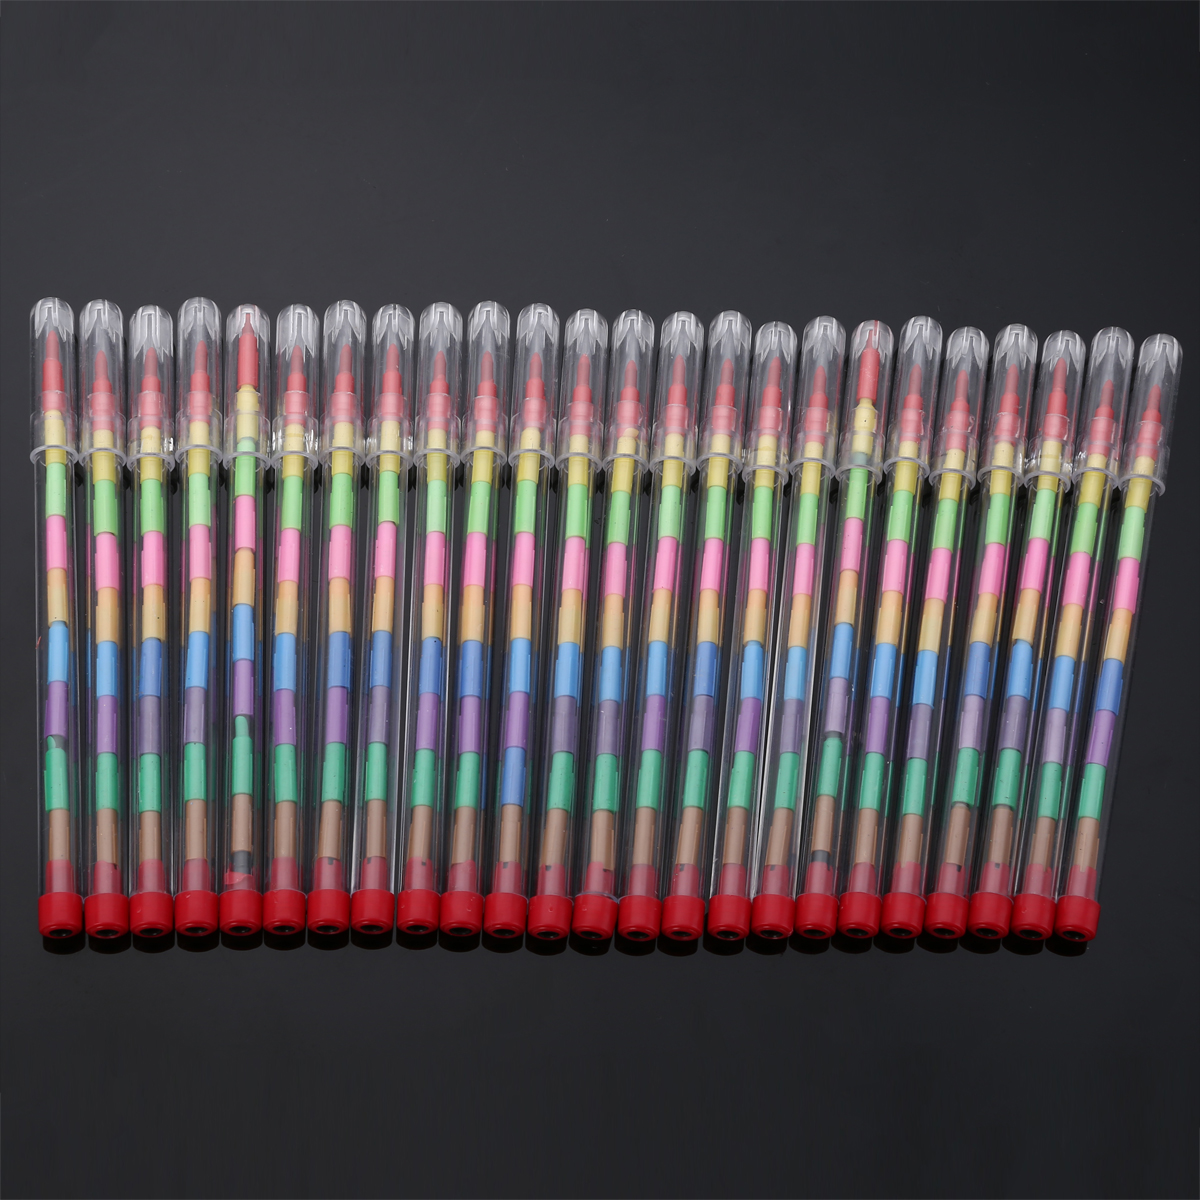 24pcs/set Funny Children Kids Painting Pencil Pop up Stacker Pencils Birthday Party Loot Bag Fillers Drawing Pen Set Party Gifts